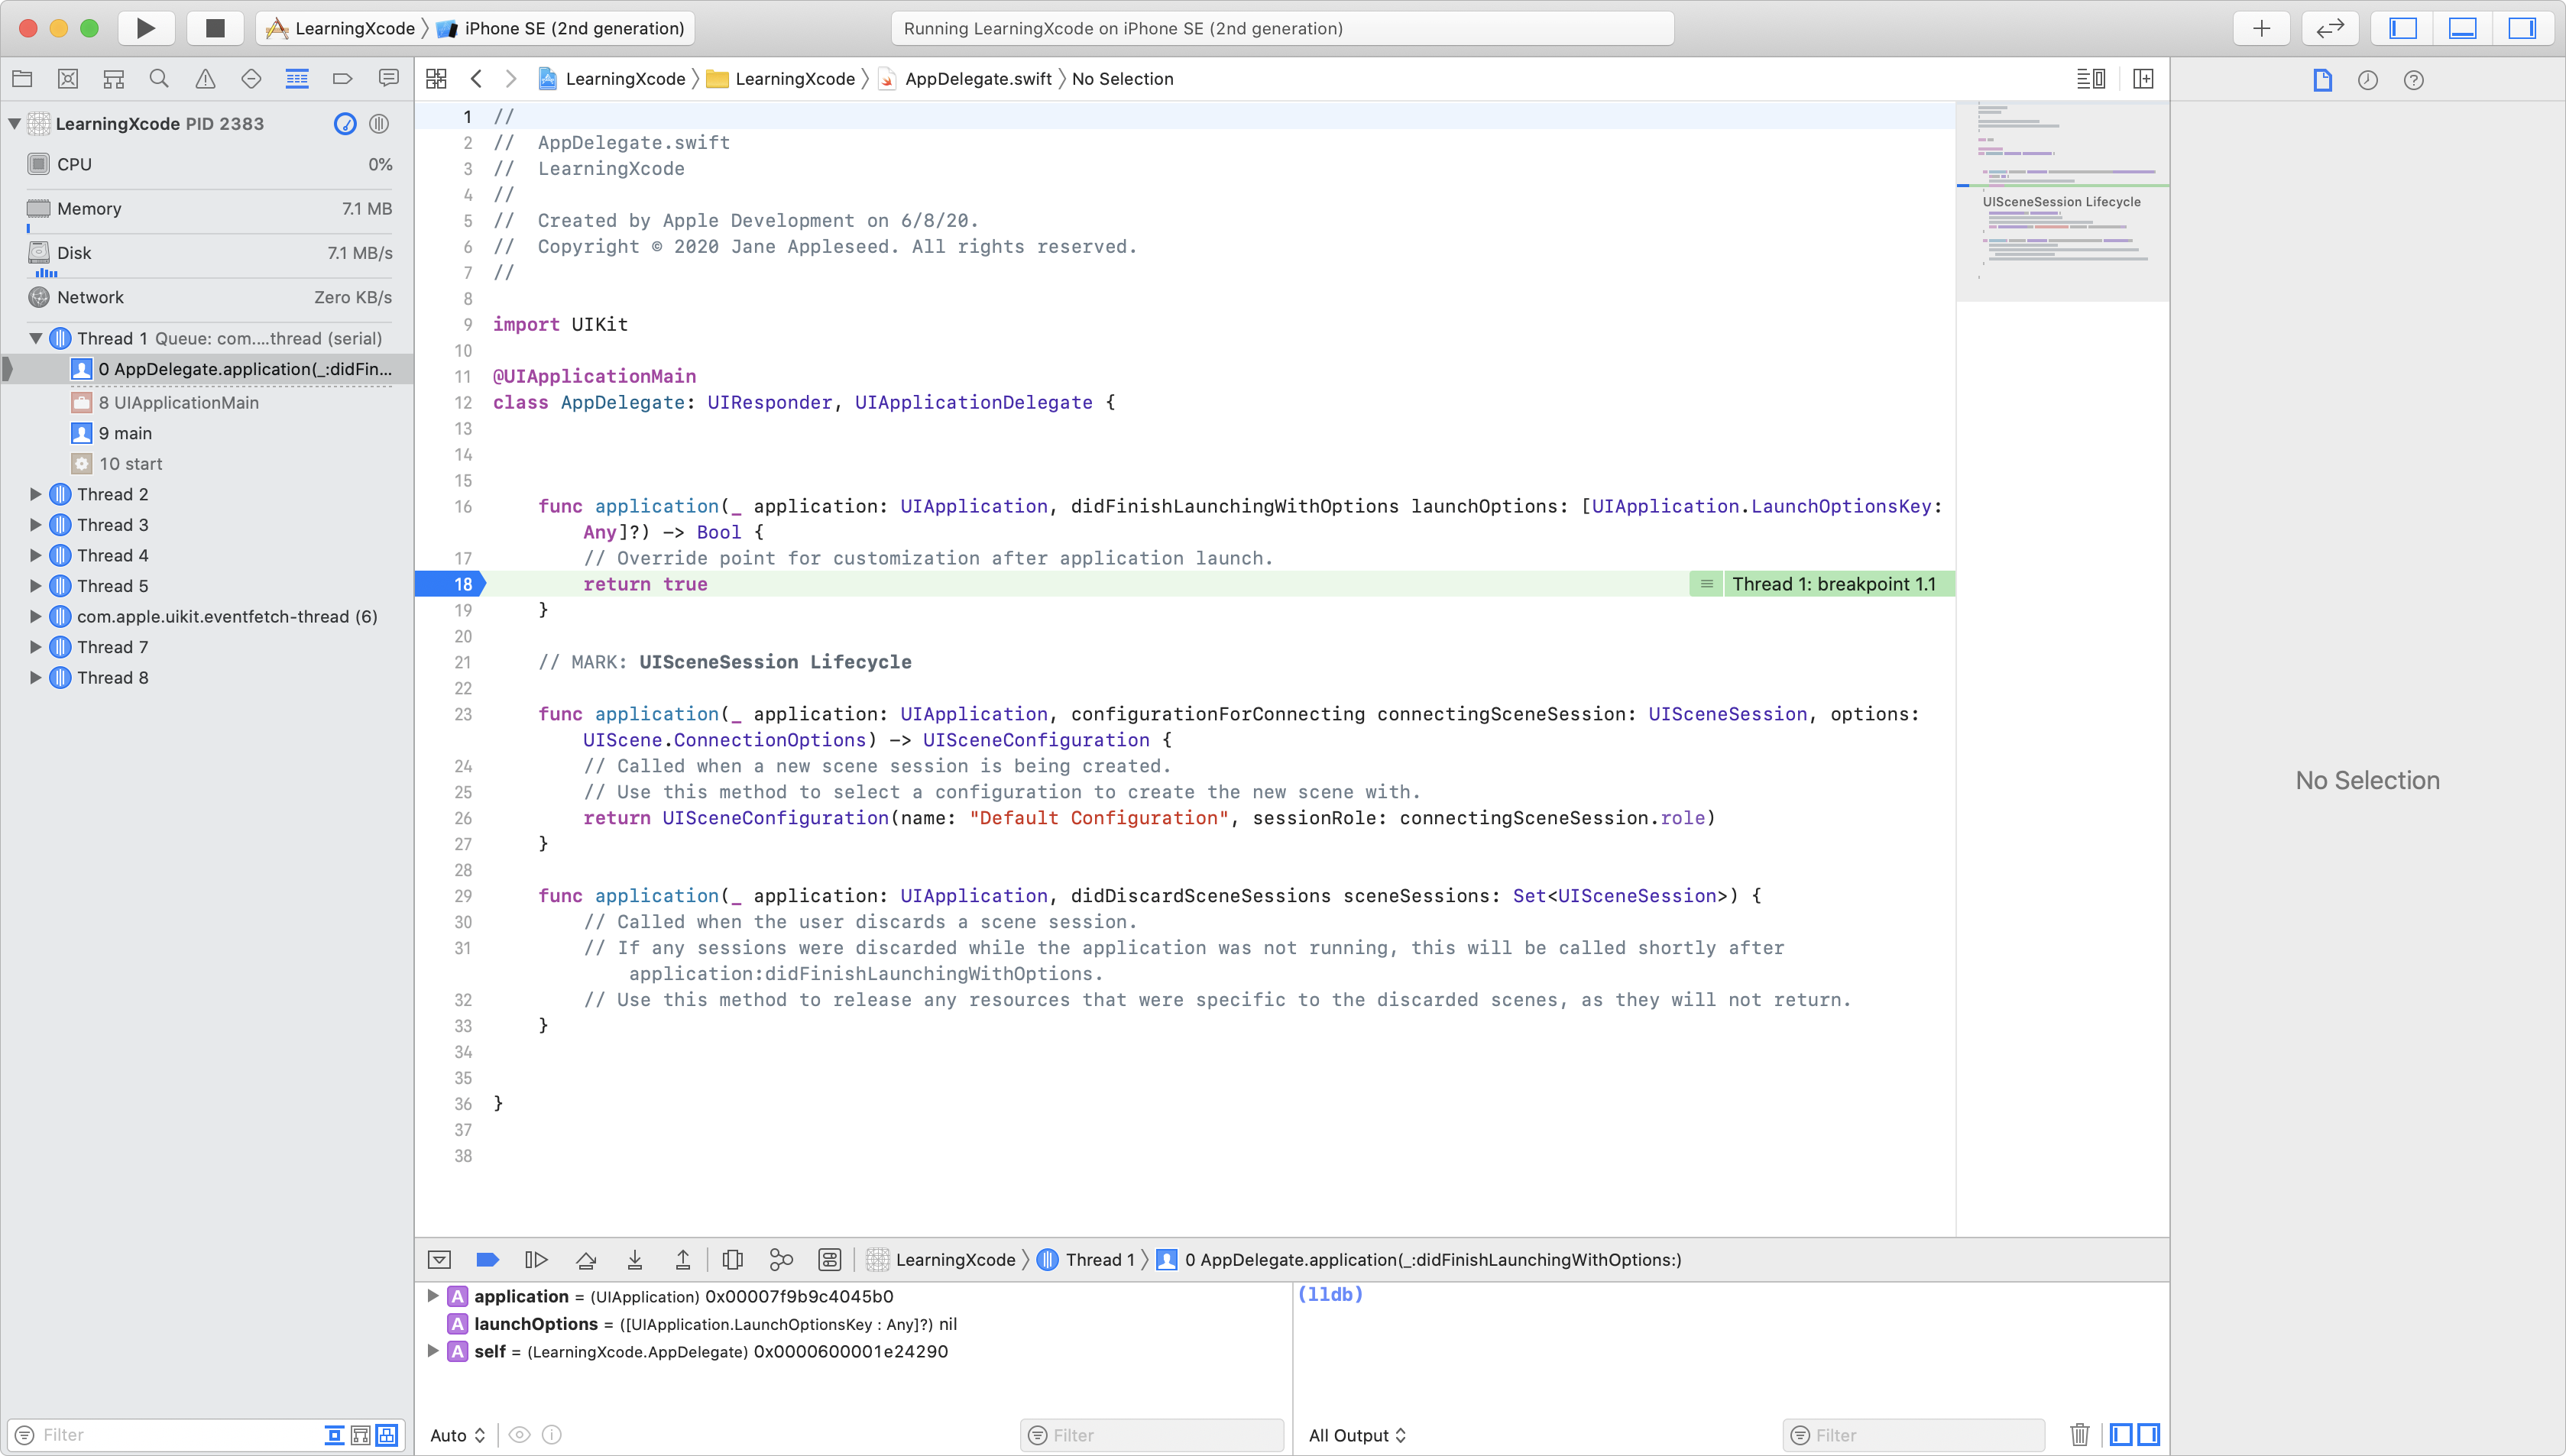 The Xcode main sections are shown on one screen.